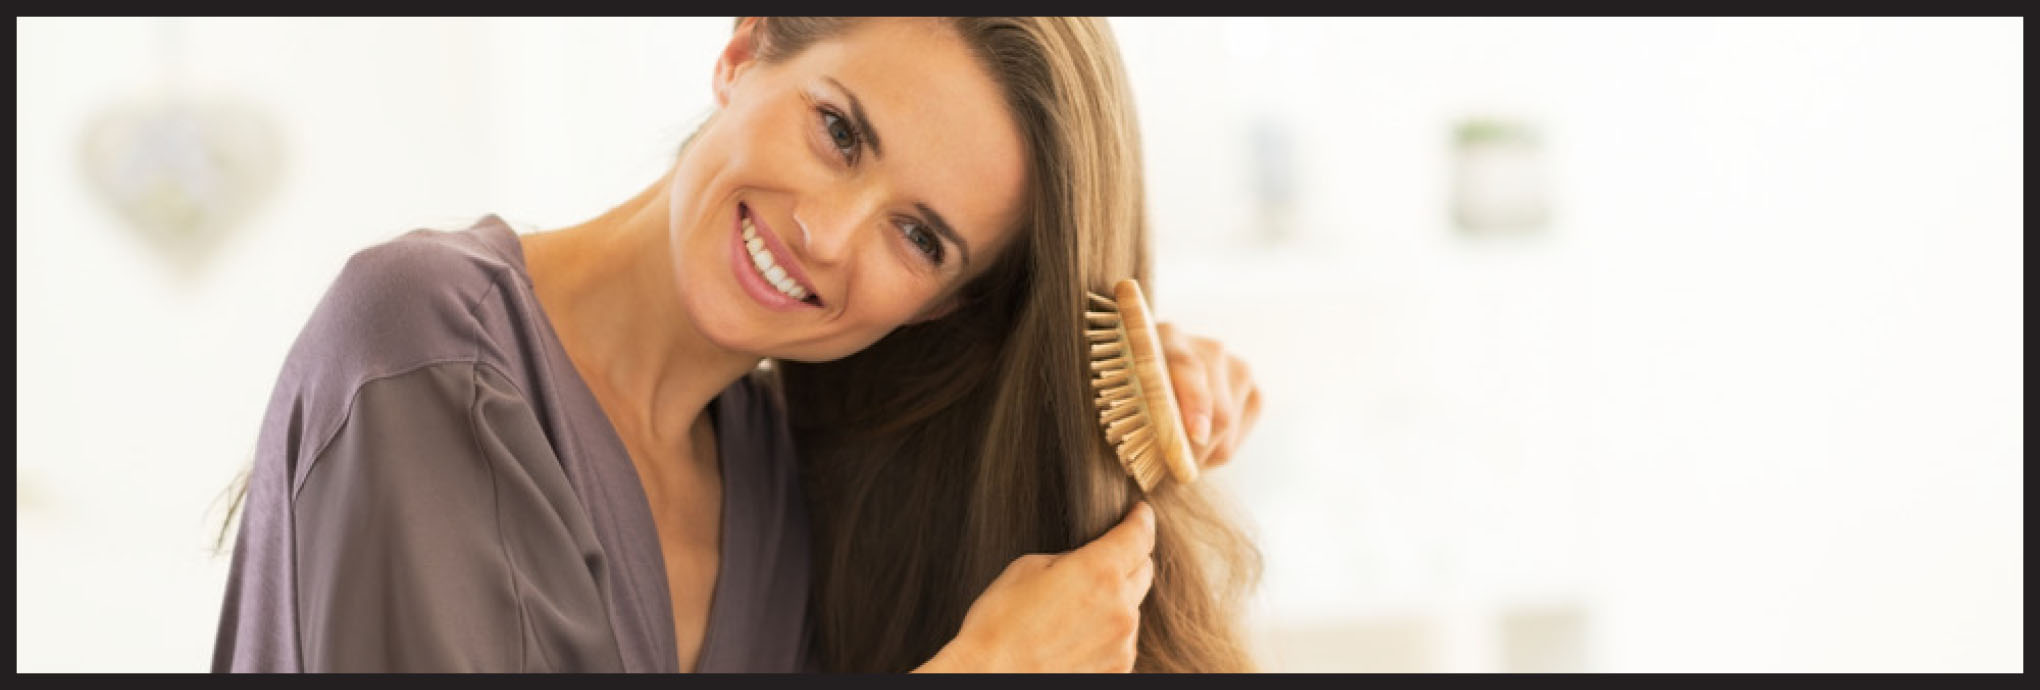 hair-care-market-trends